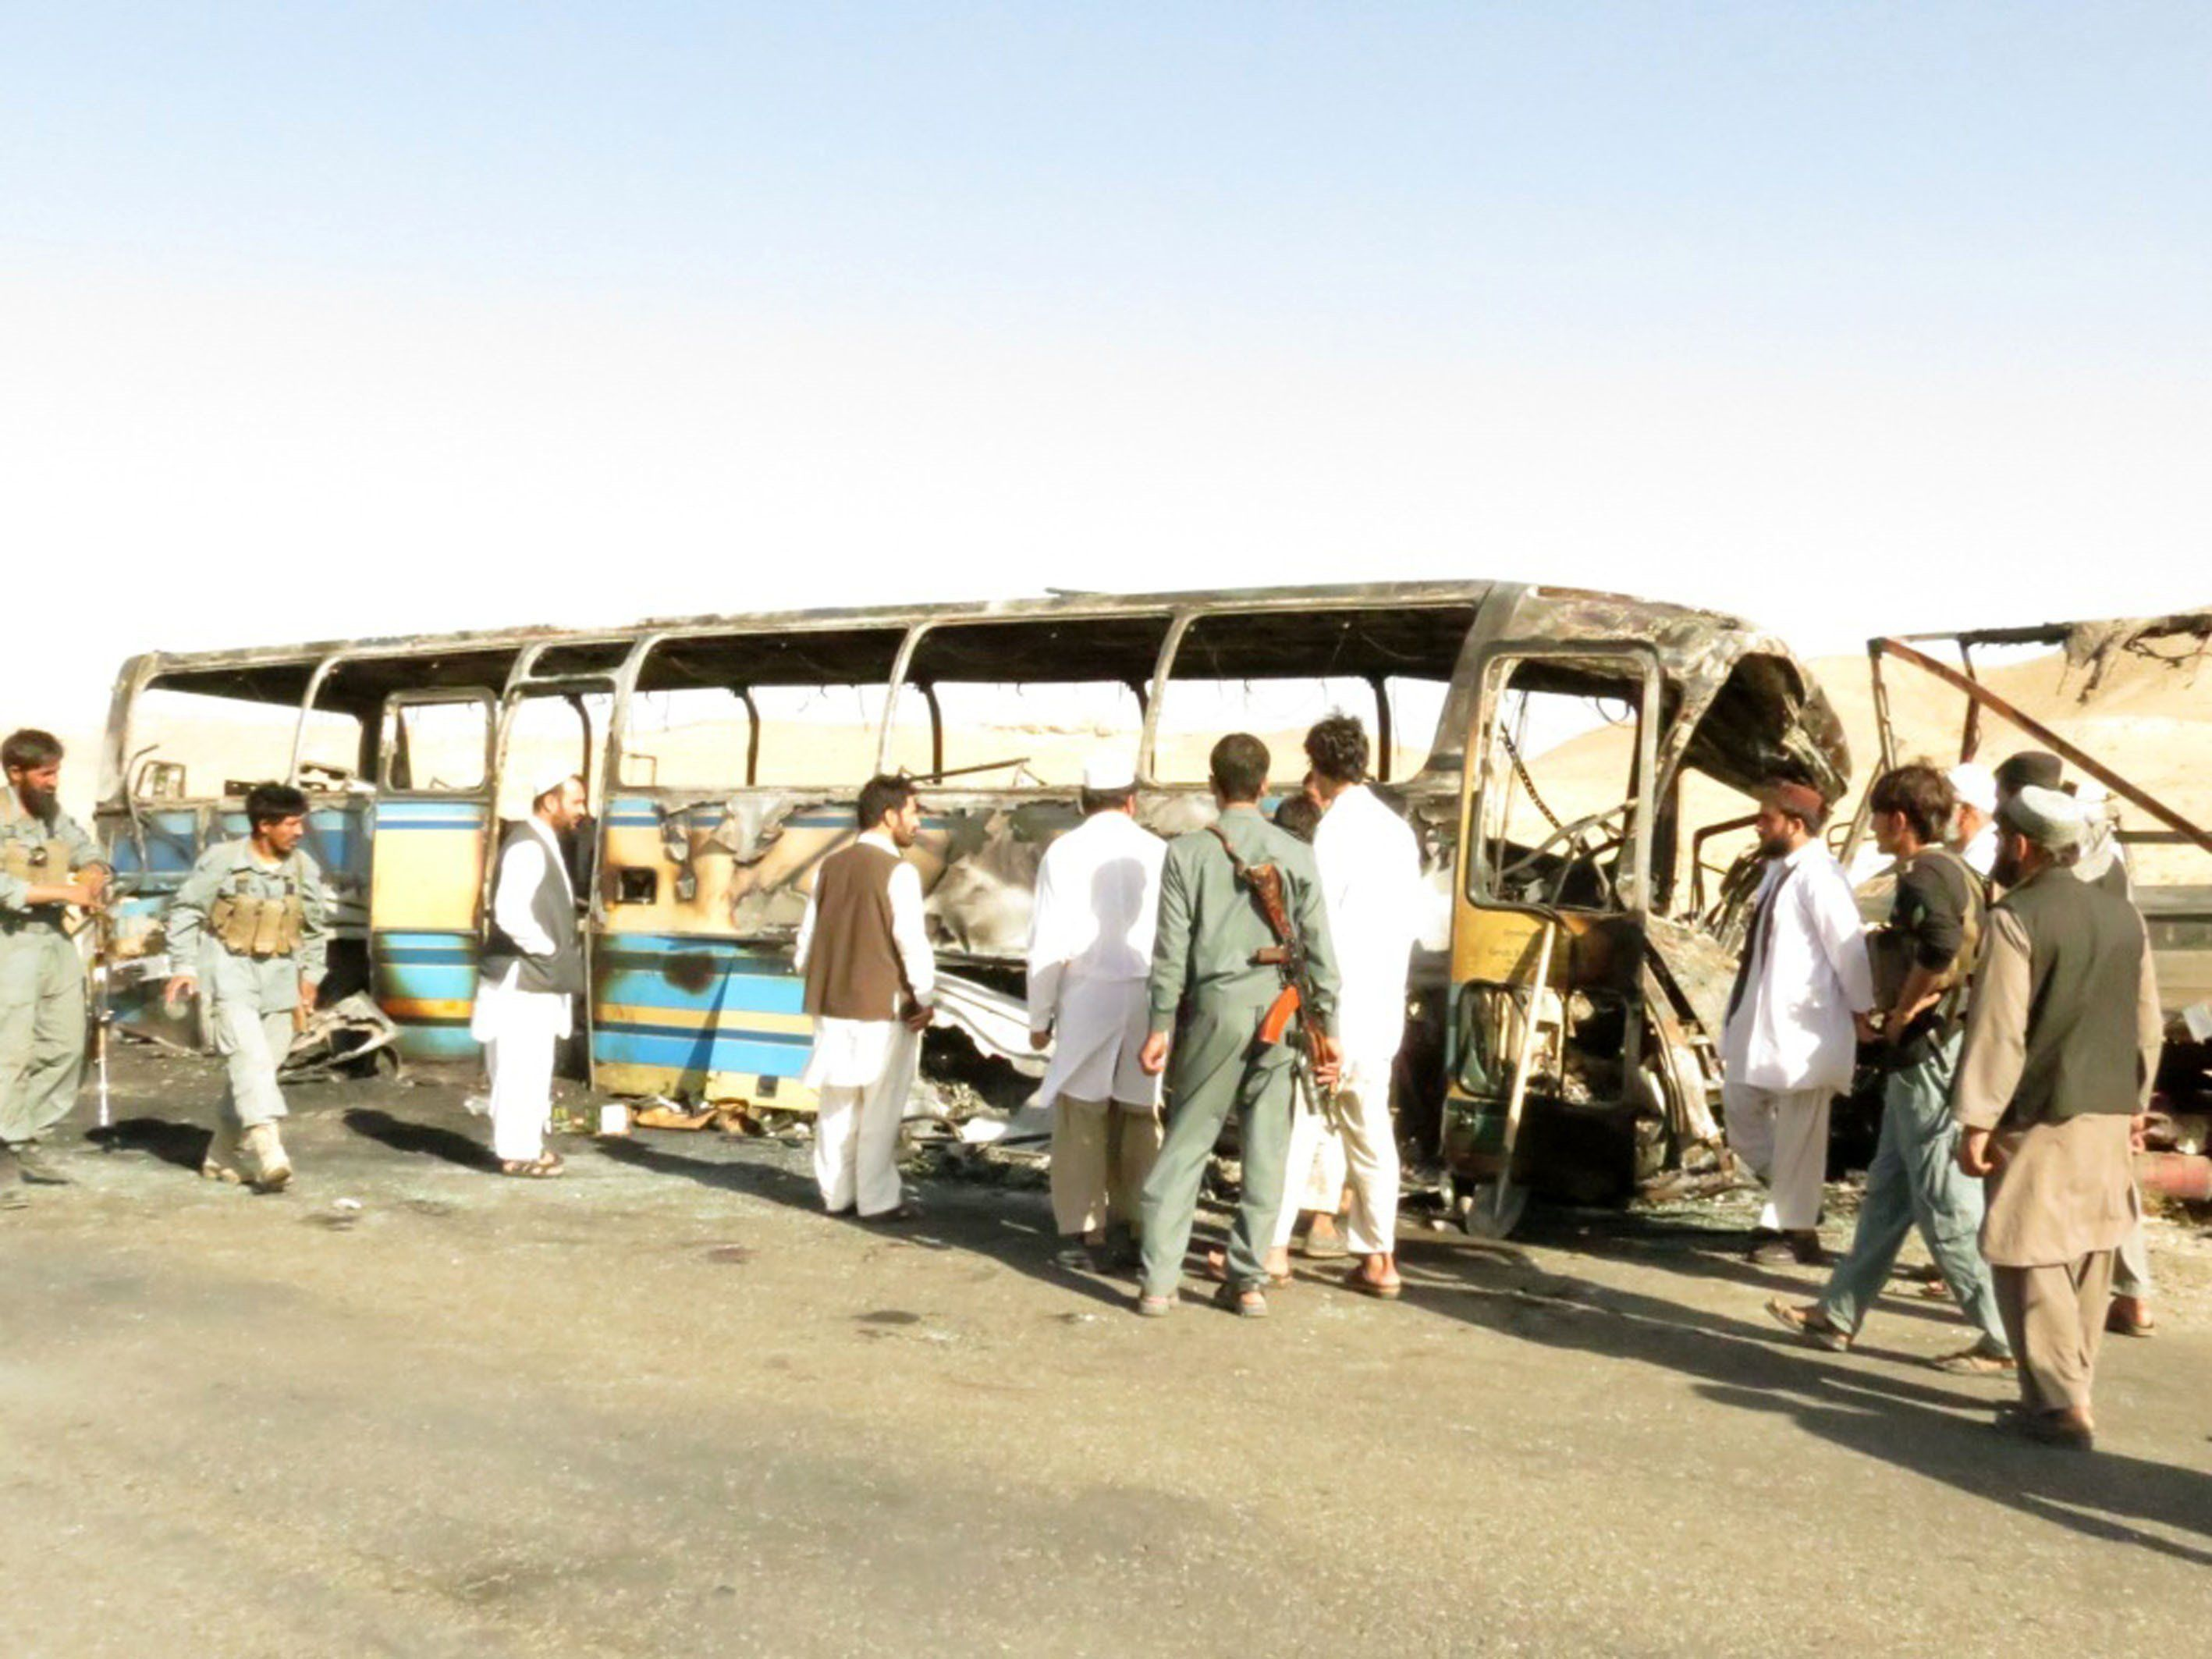 Security forces and civilians inspect the wreckage of a damaged bus after it collided with a lorry in Zabul, Afghanistan on S